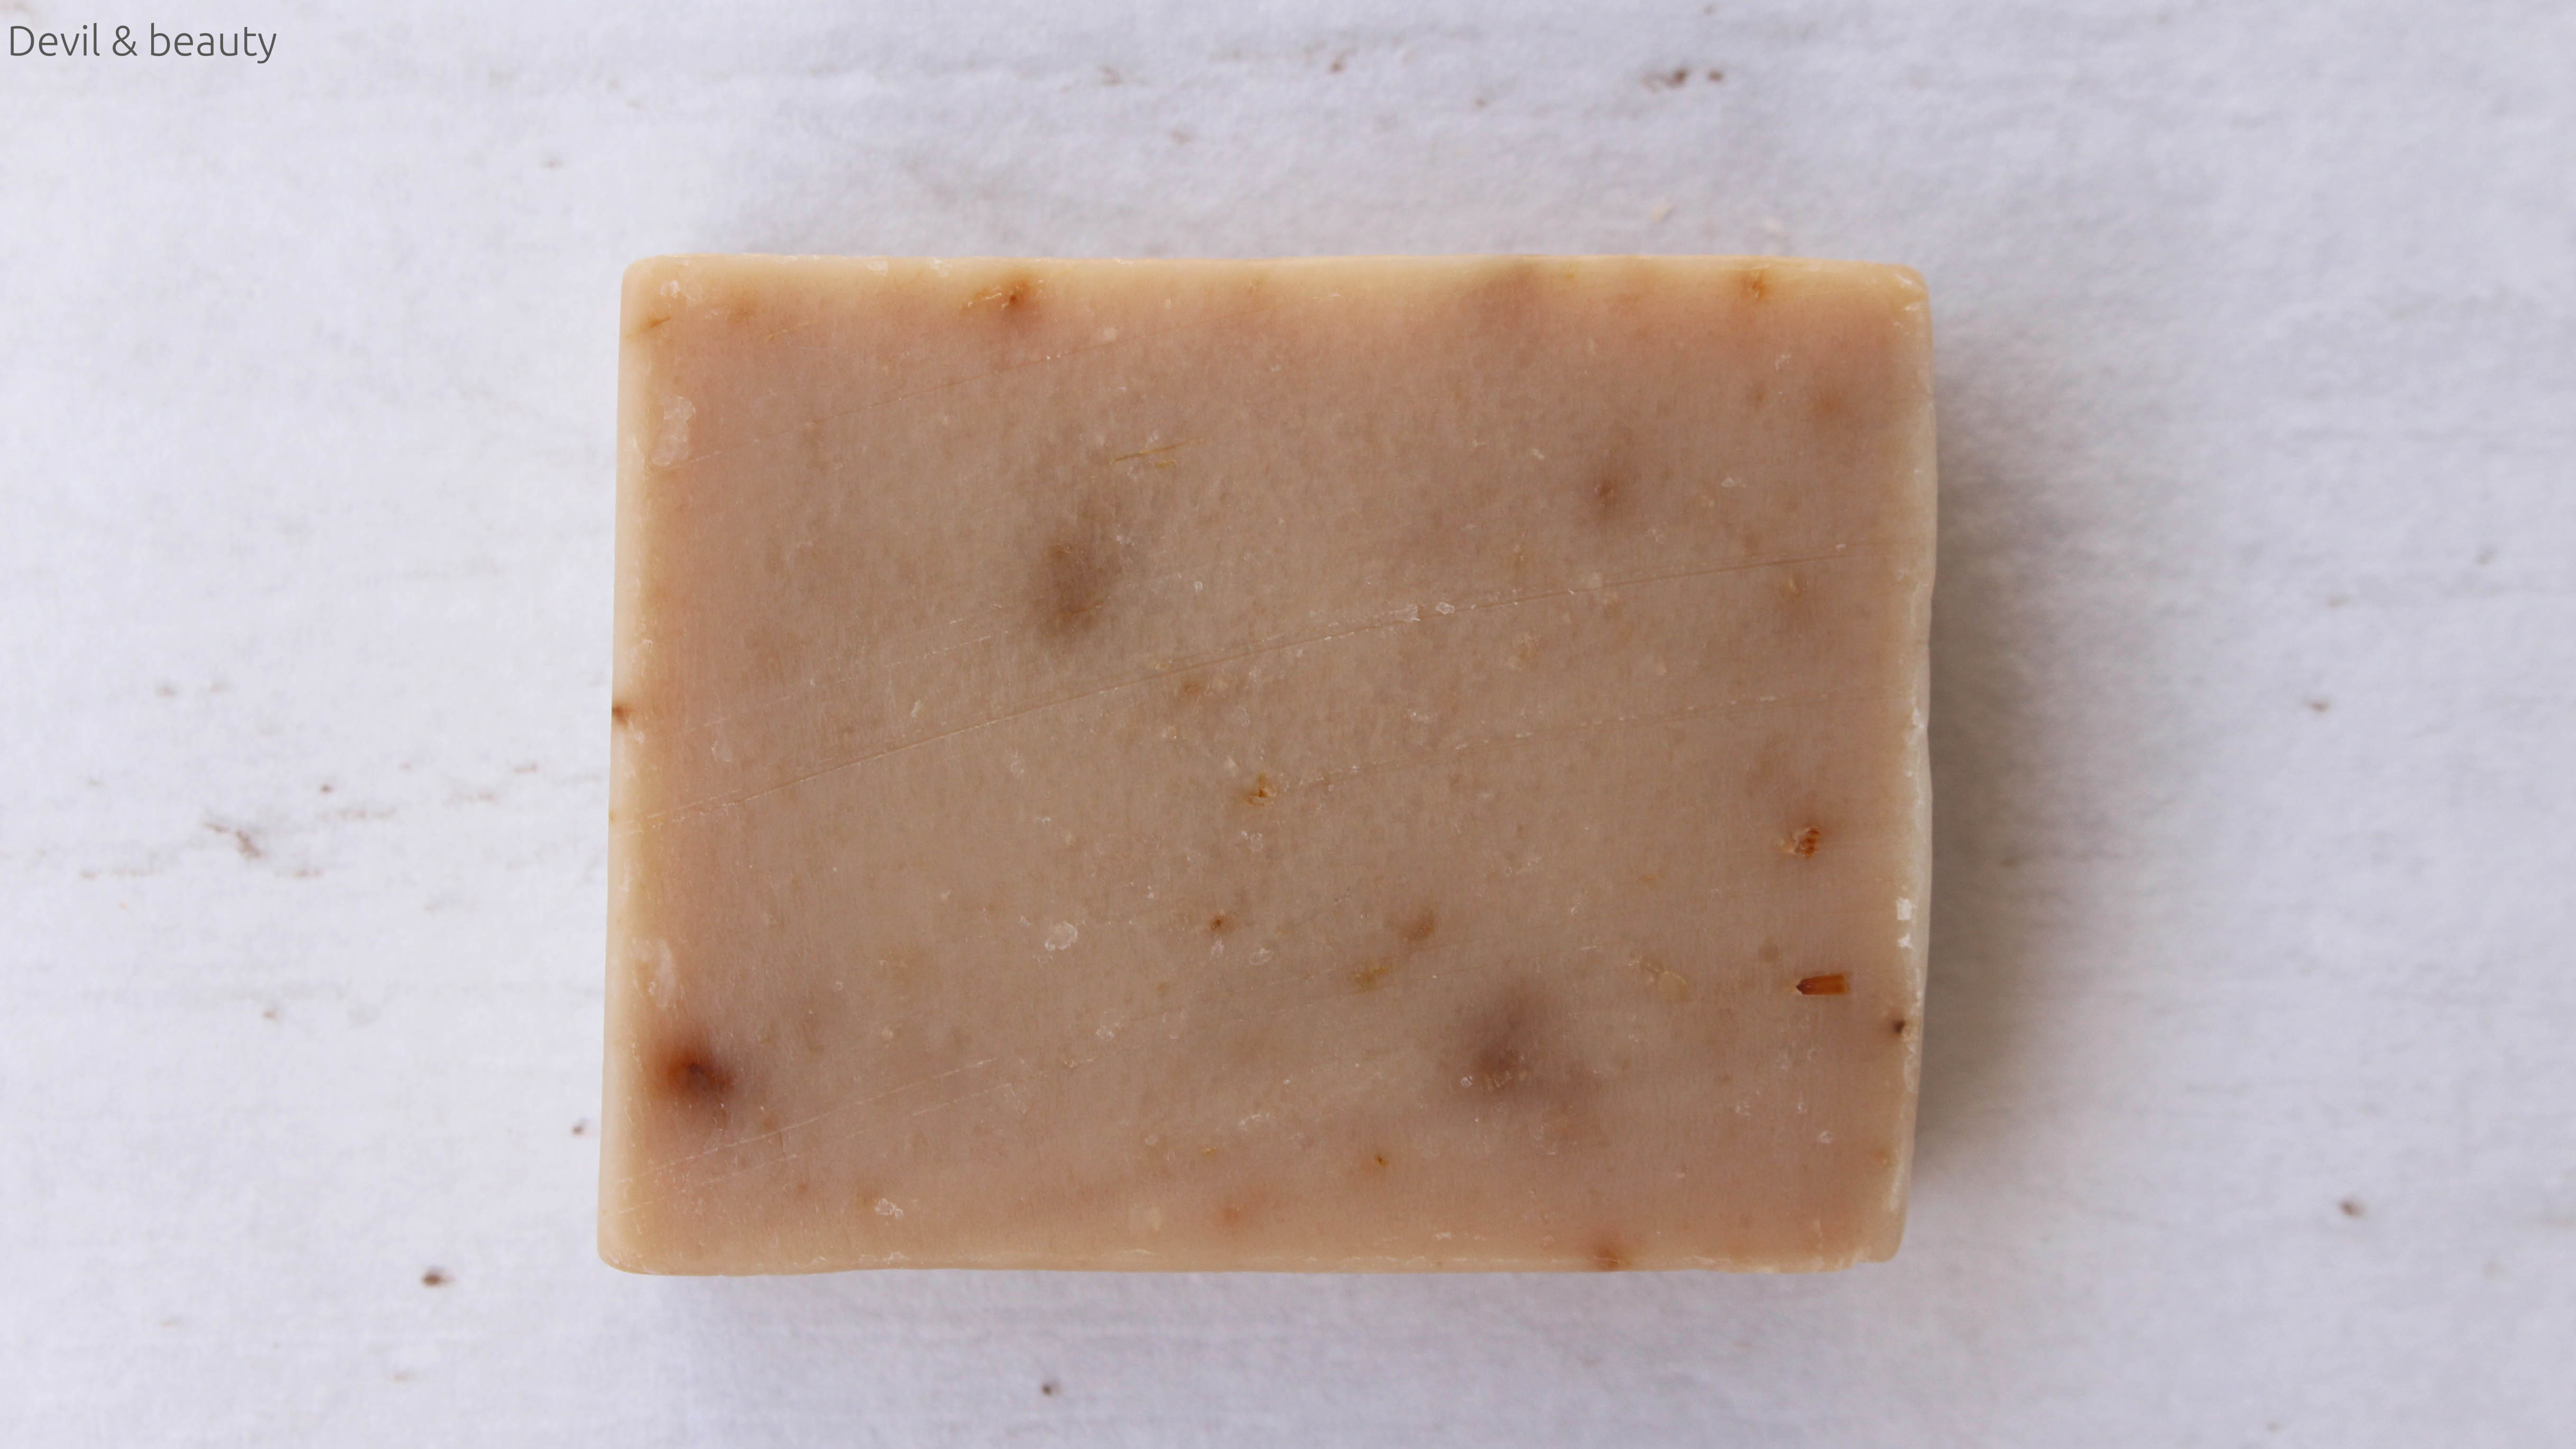 neo-natural-herbal-soap10 - image